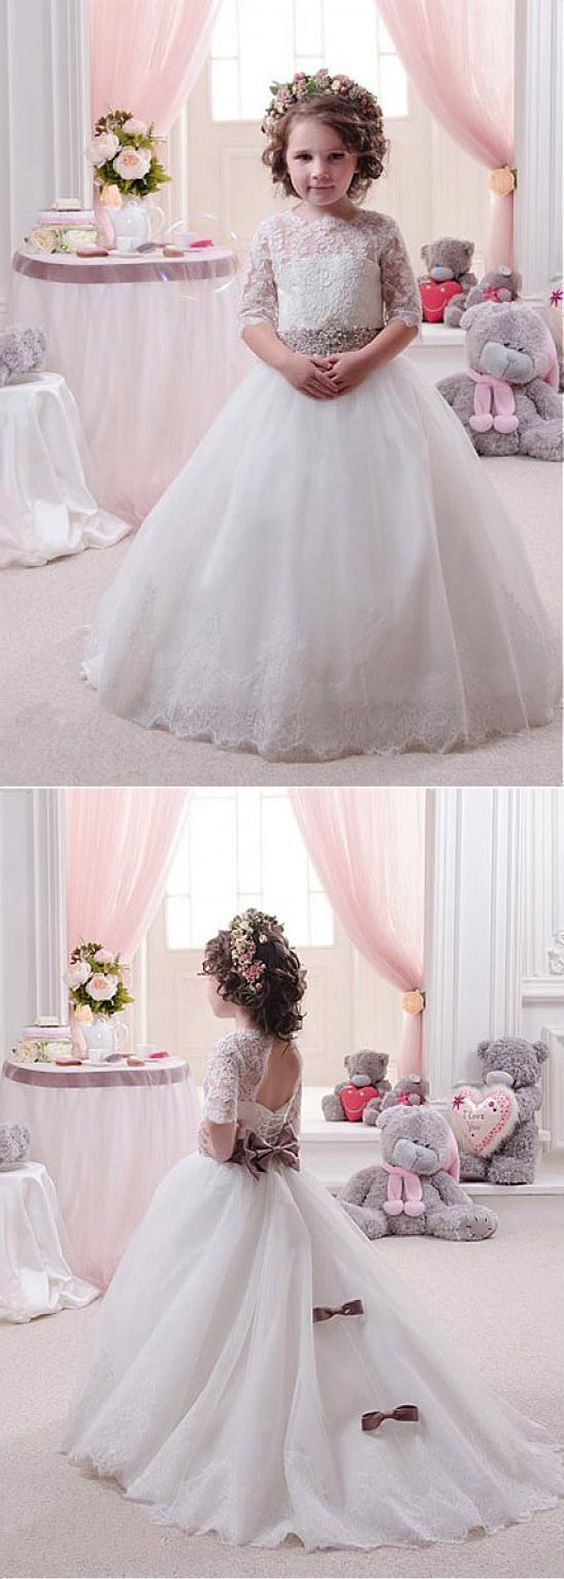 Charming Tulle & Satin Jewel Neckline Ball Gown Flower Girl Dresses With Lace